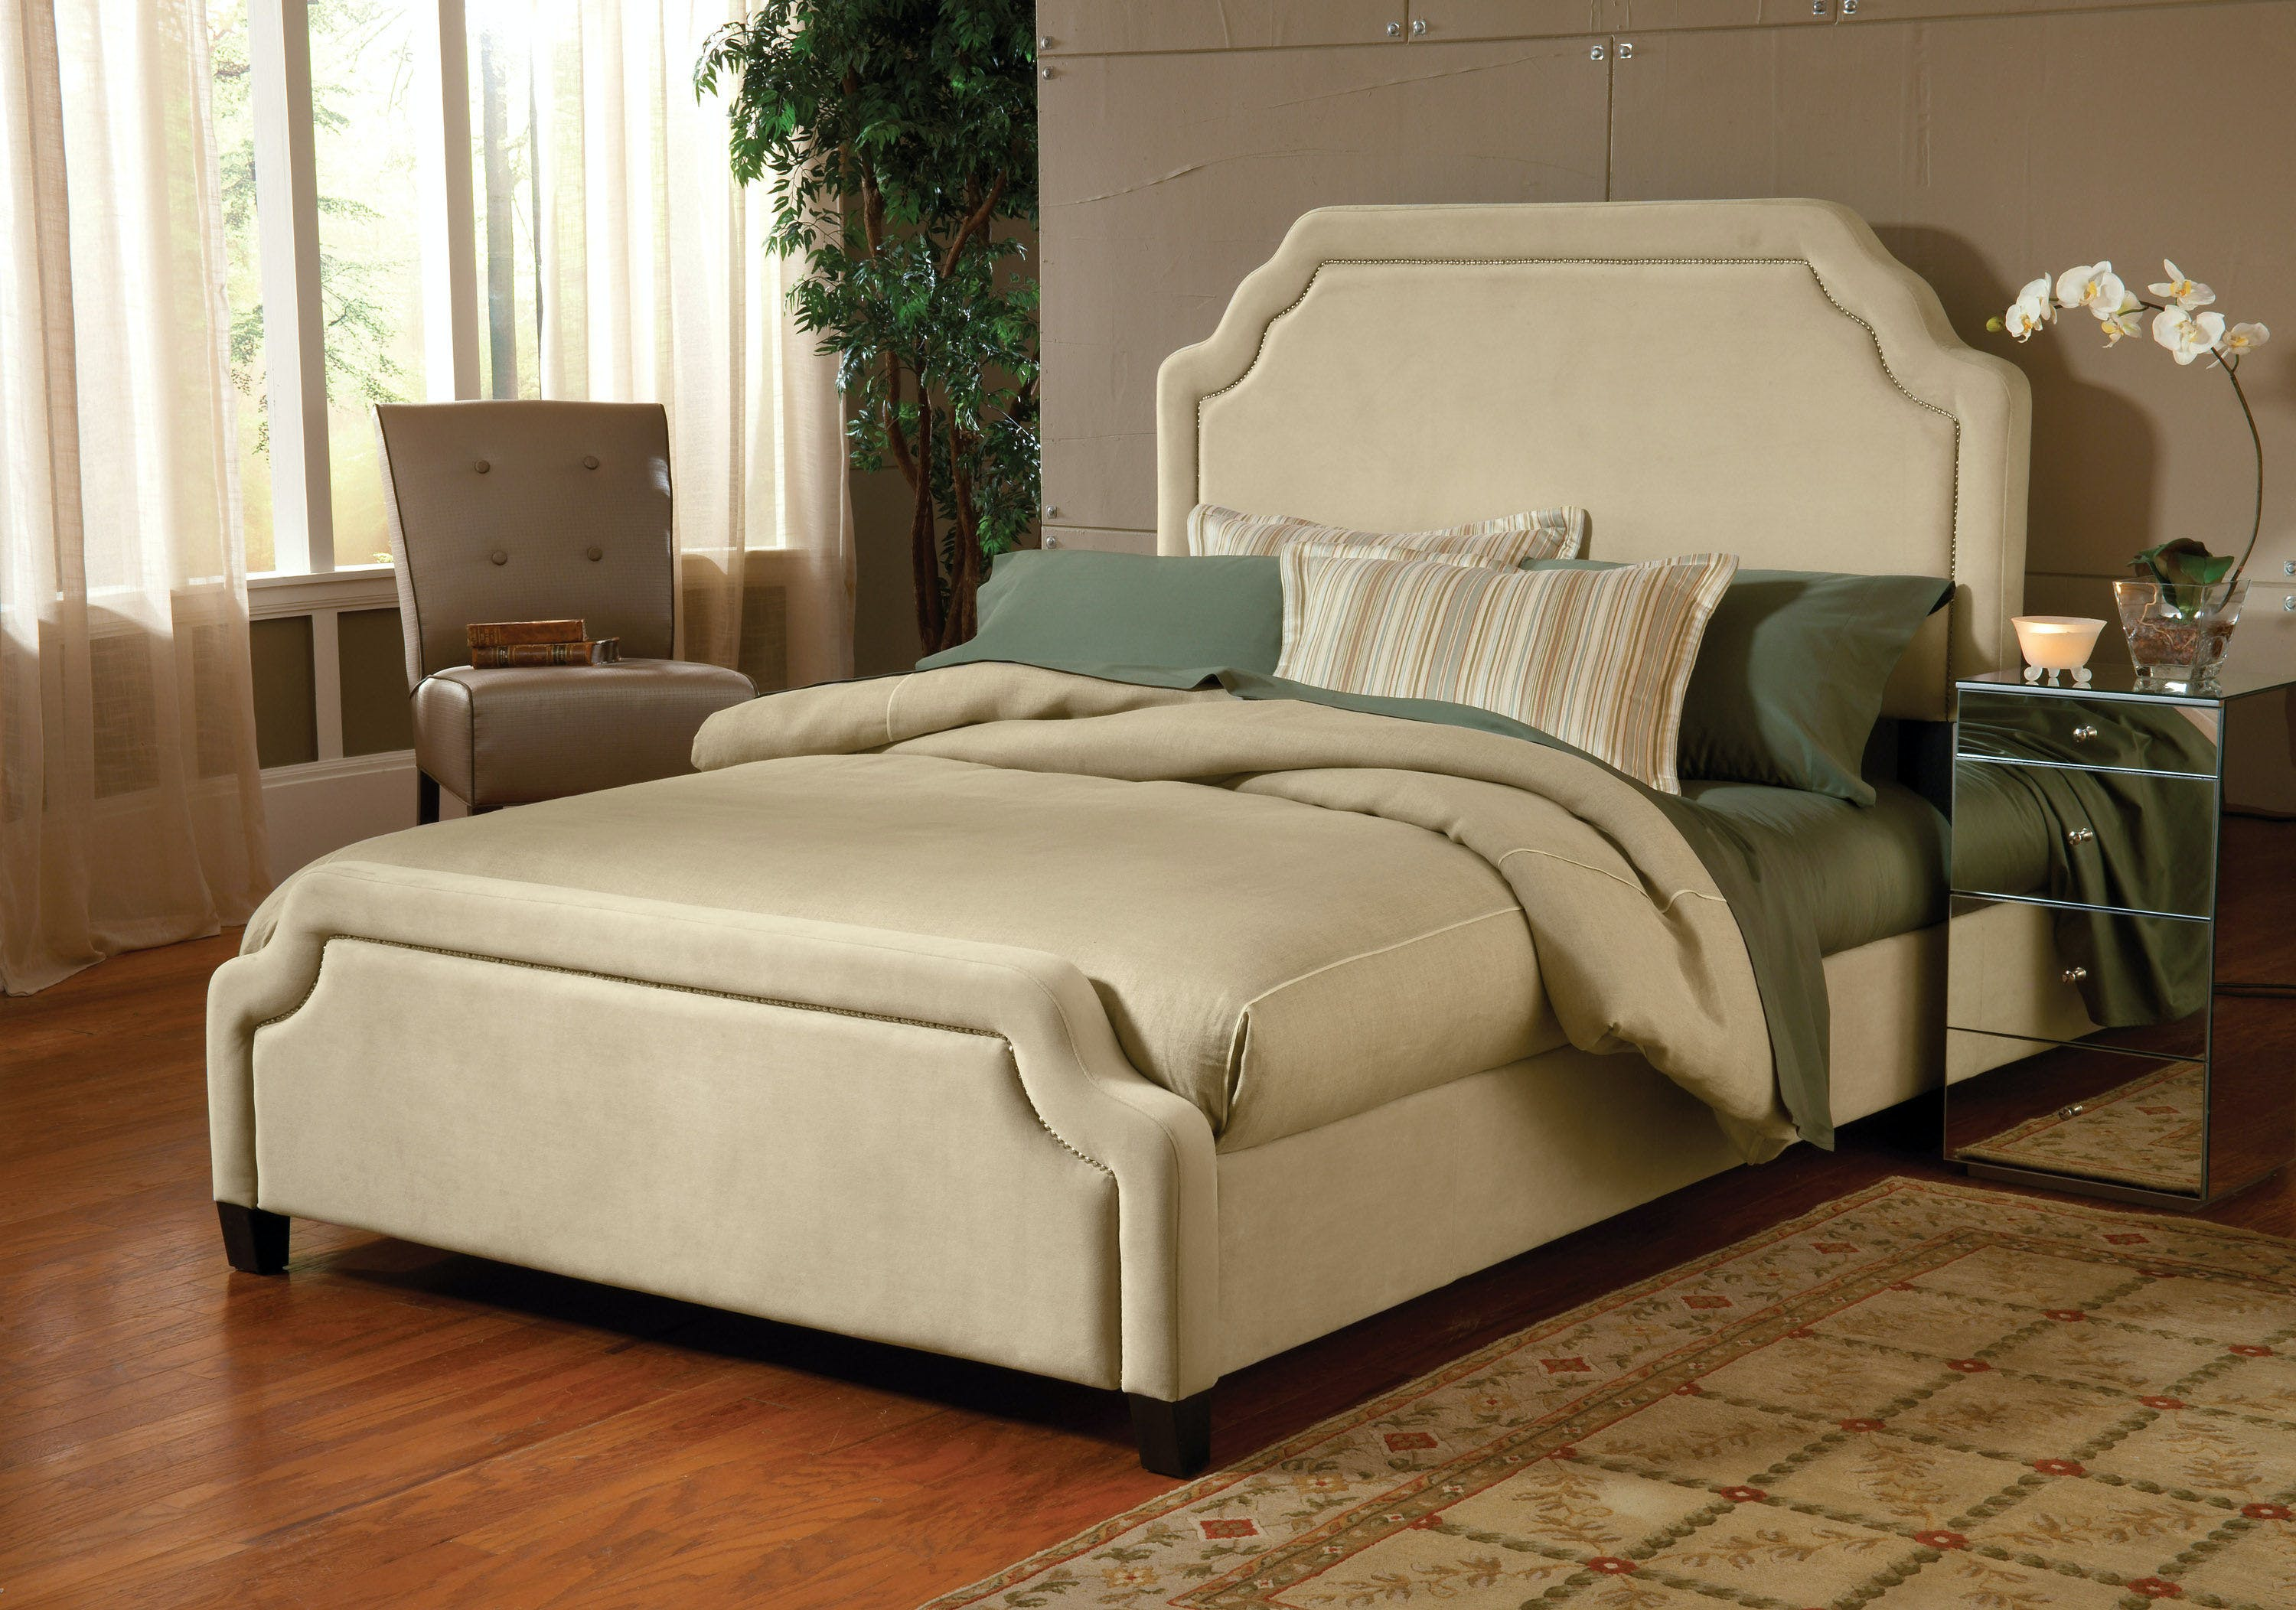 Hillsdale Furniture Bedroom Carlyle California King Bed Set With Rails 1566bckrc Rice Furniture